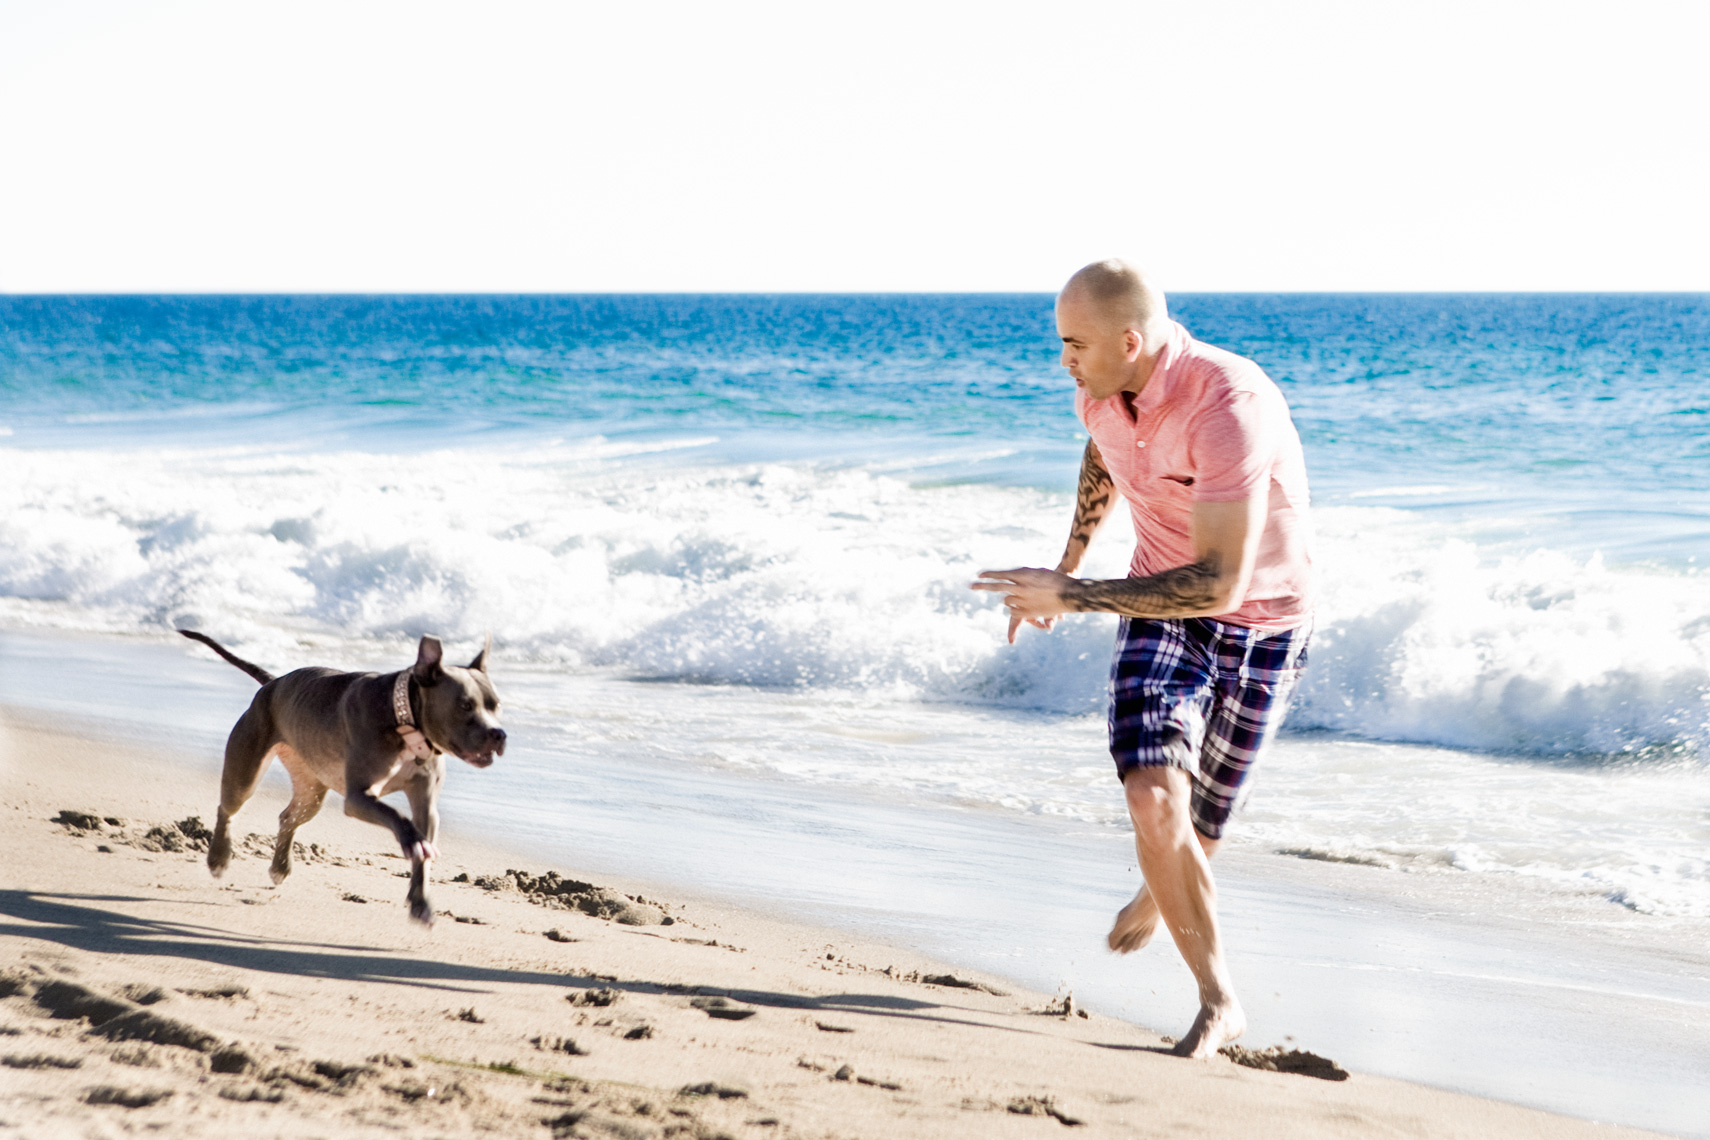 Los Angeles Dog Photography, Michael Brian, Tyson Kilmer, Pit Bull, run on beach, Kasha Fierce, Dog Trainer